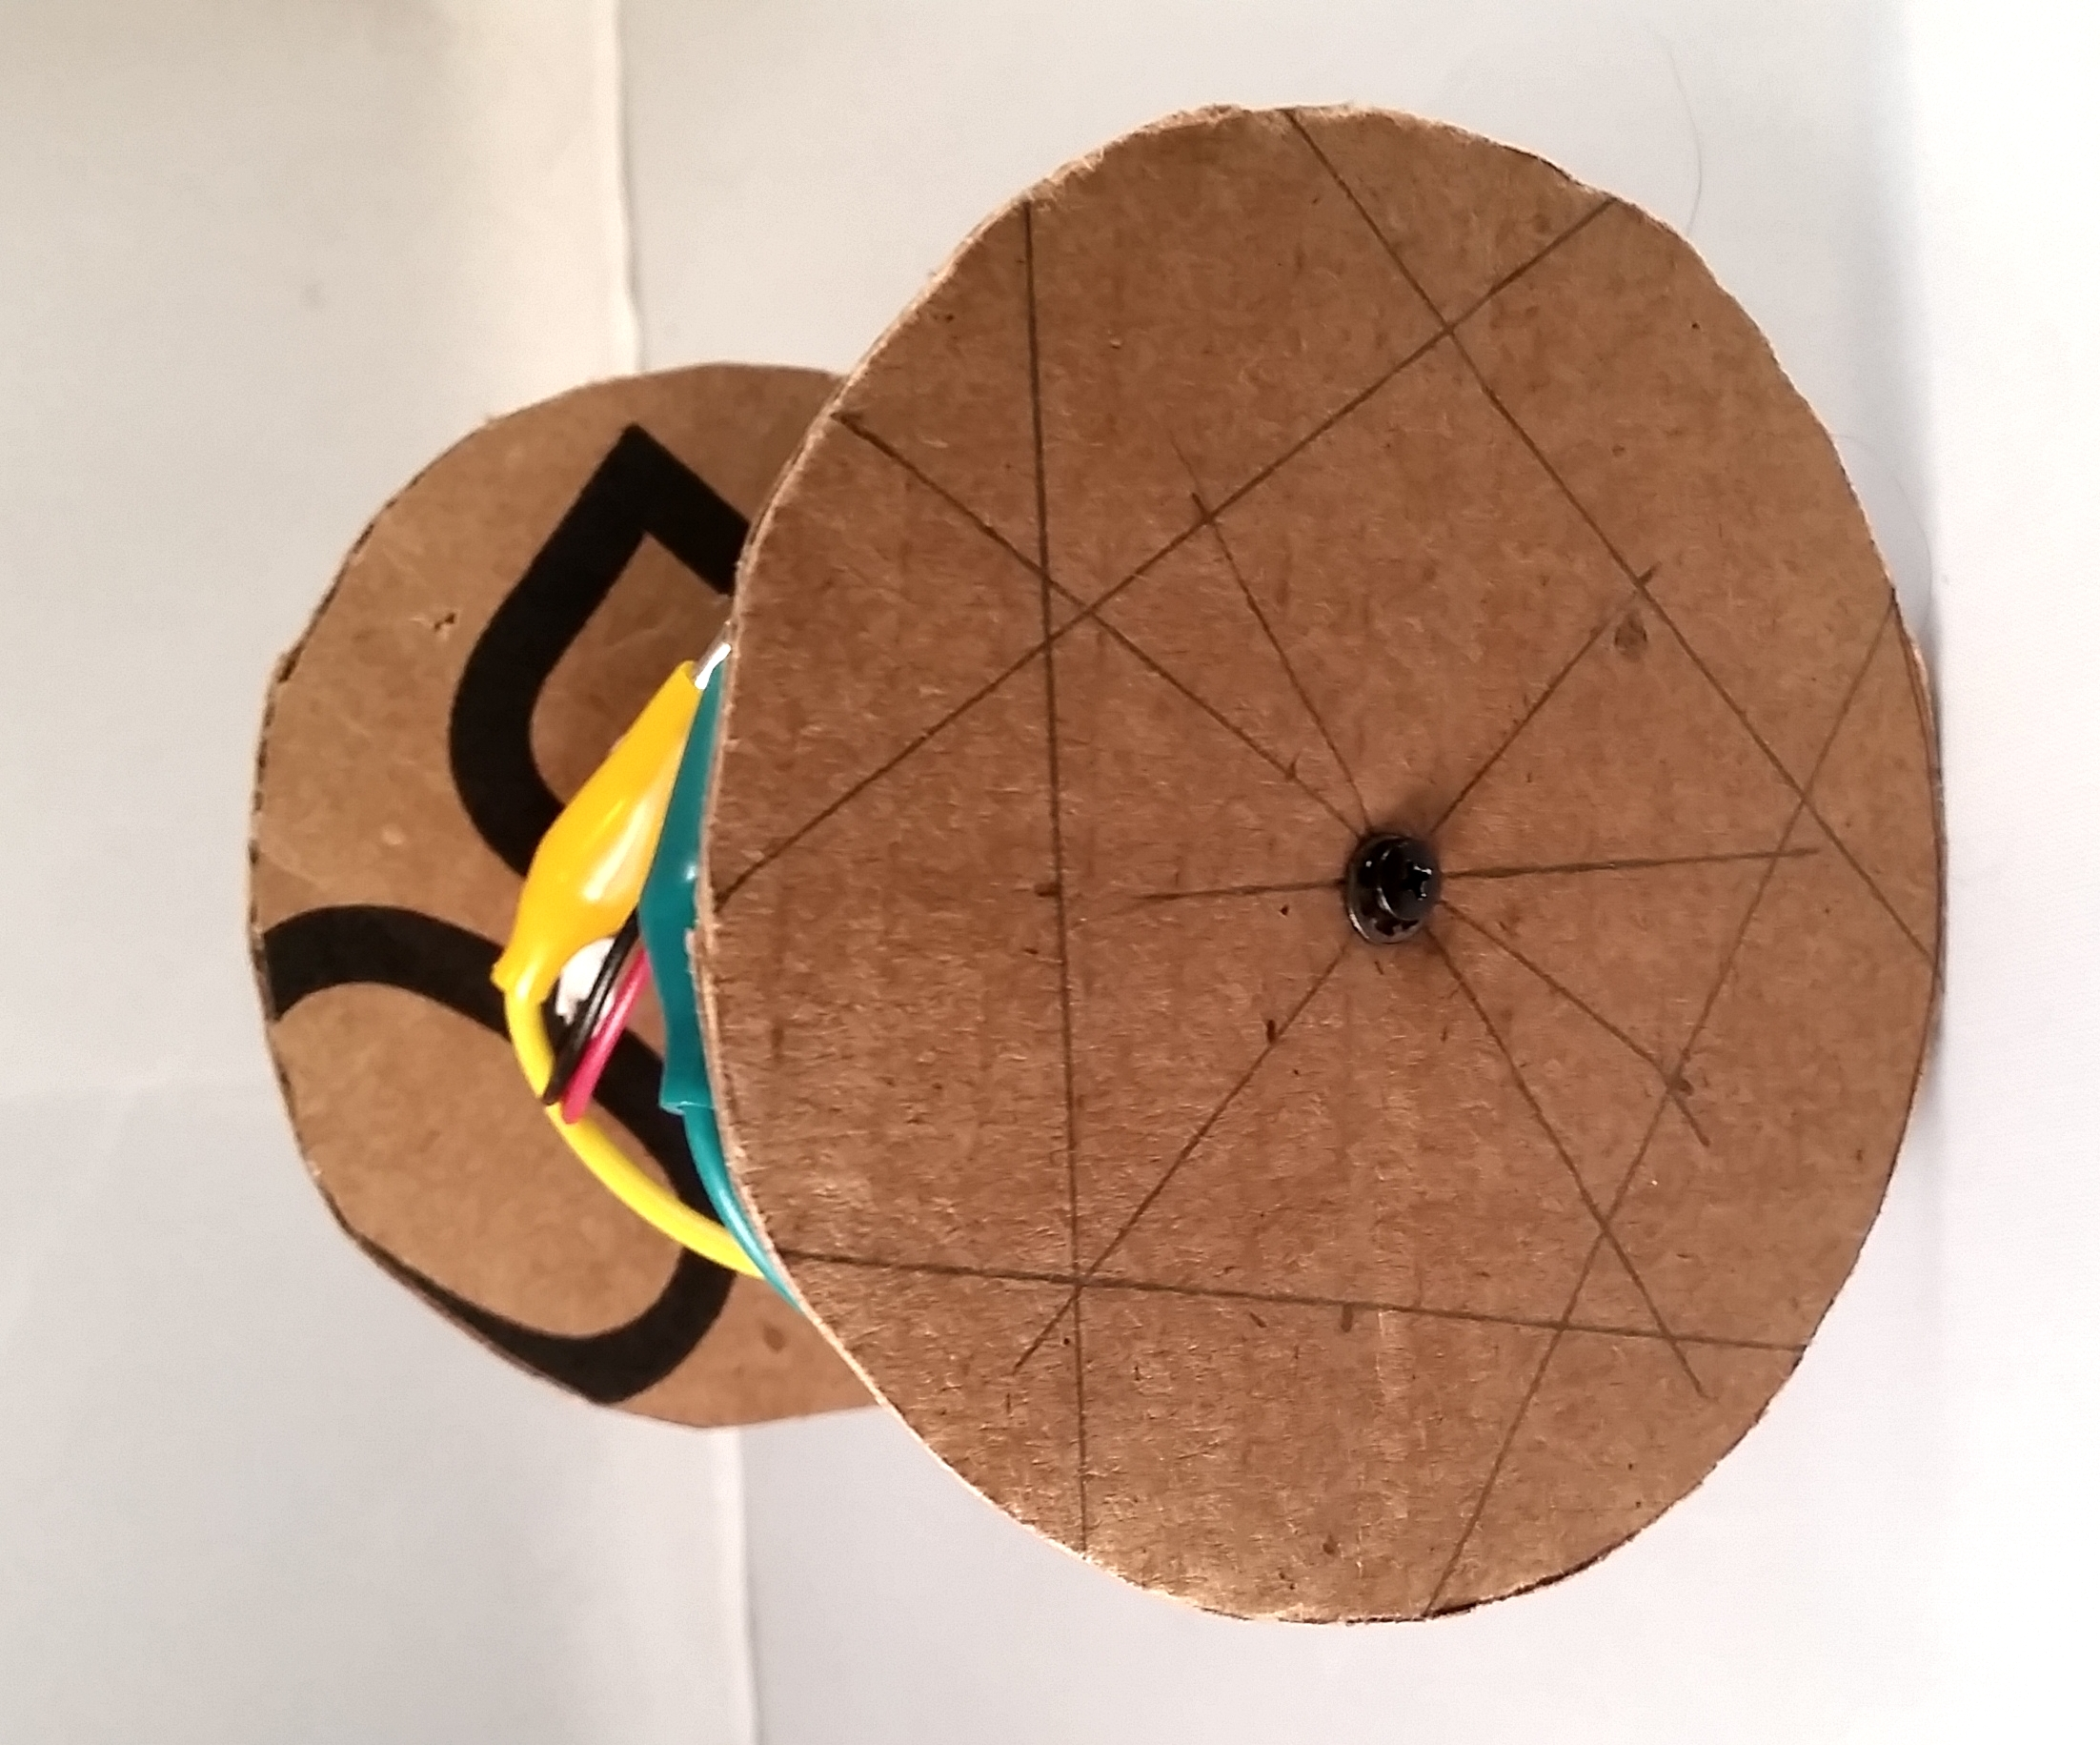 circuit_playground_wheel.jpg